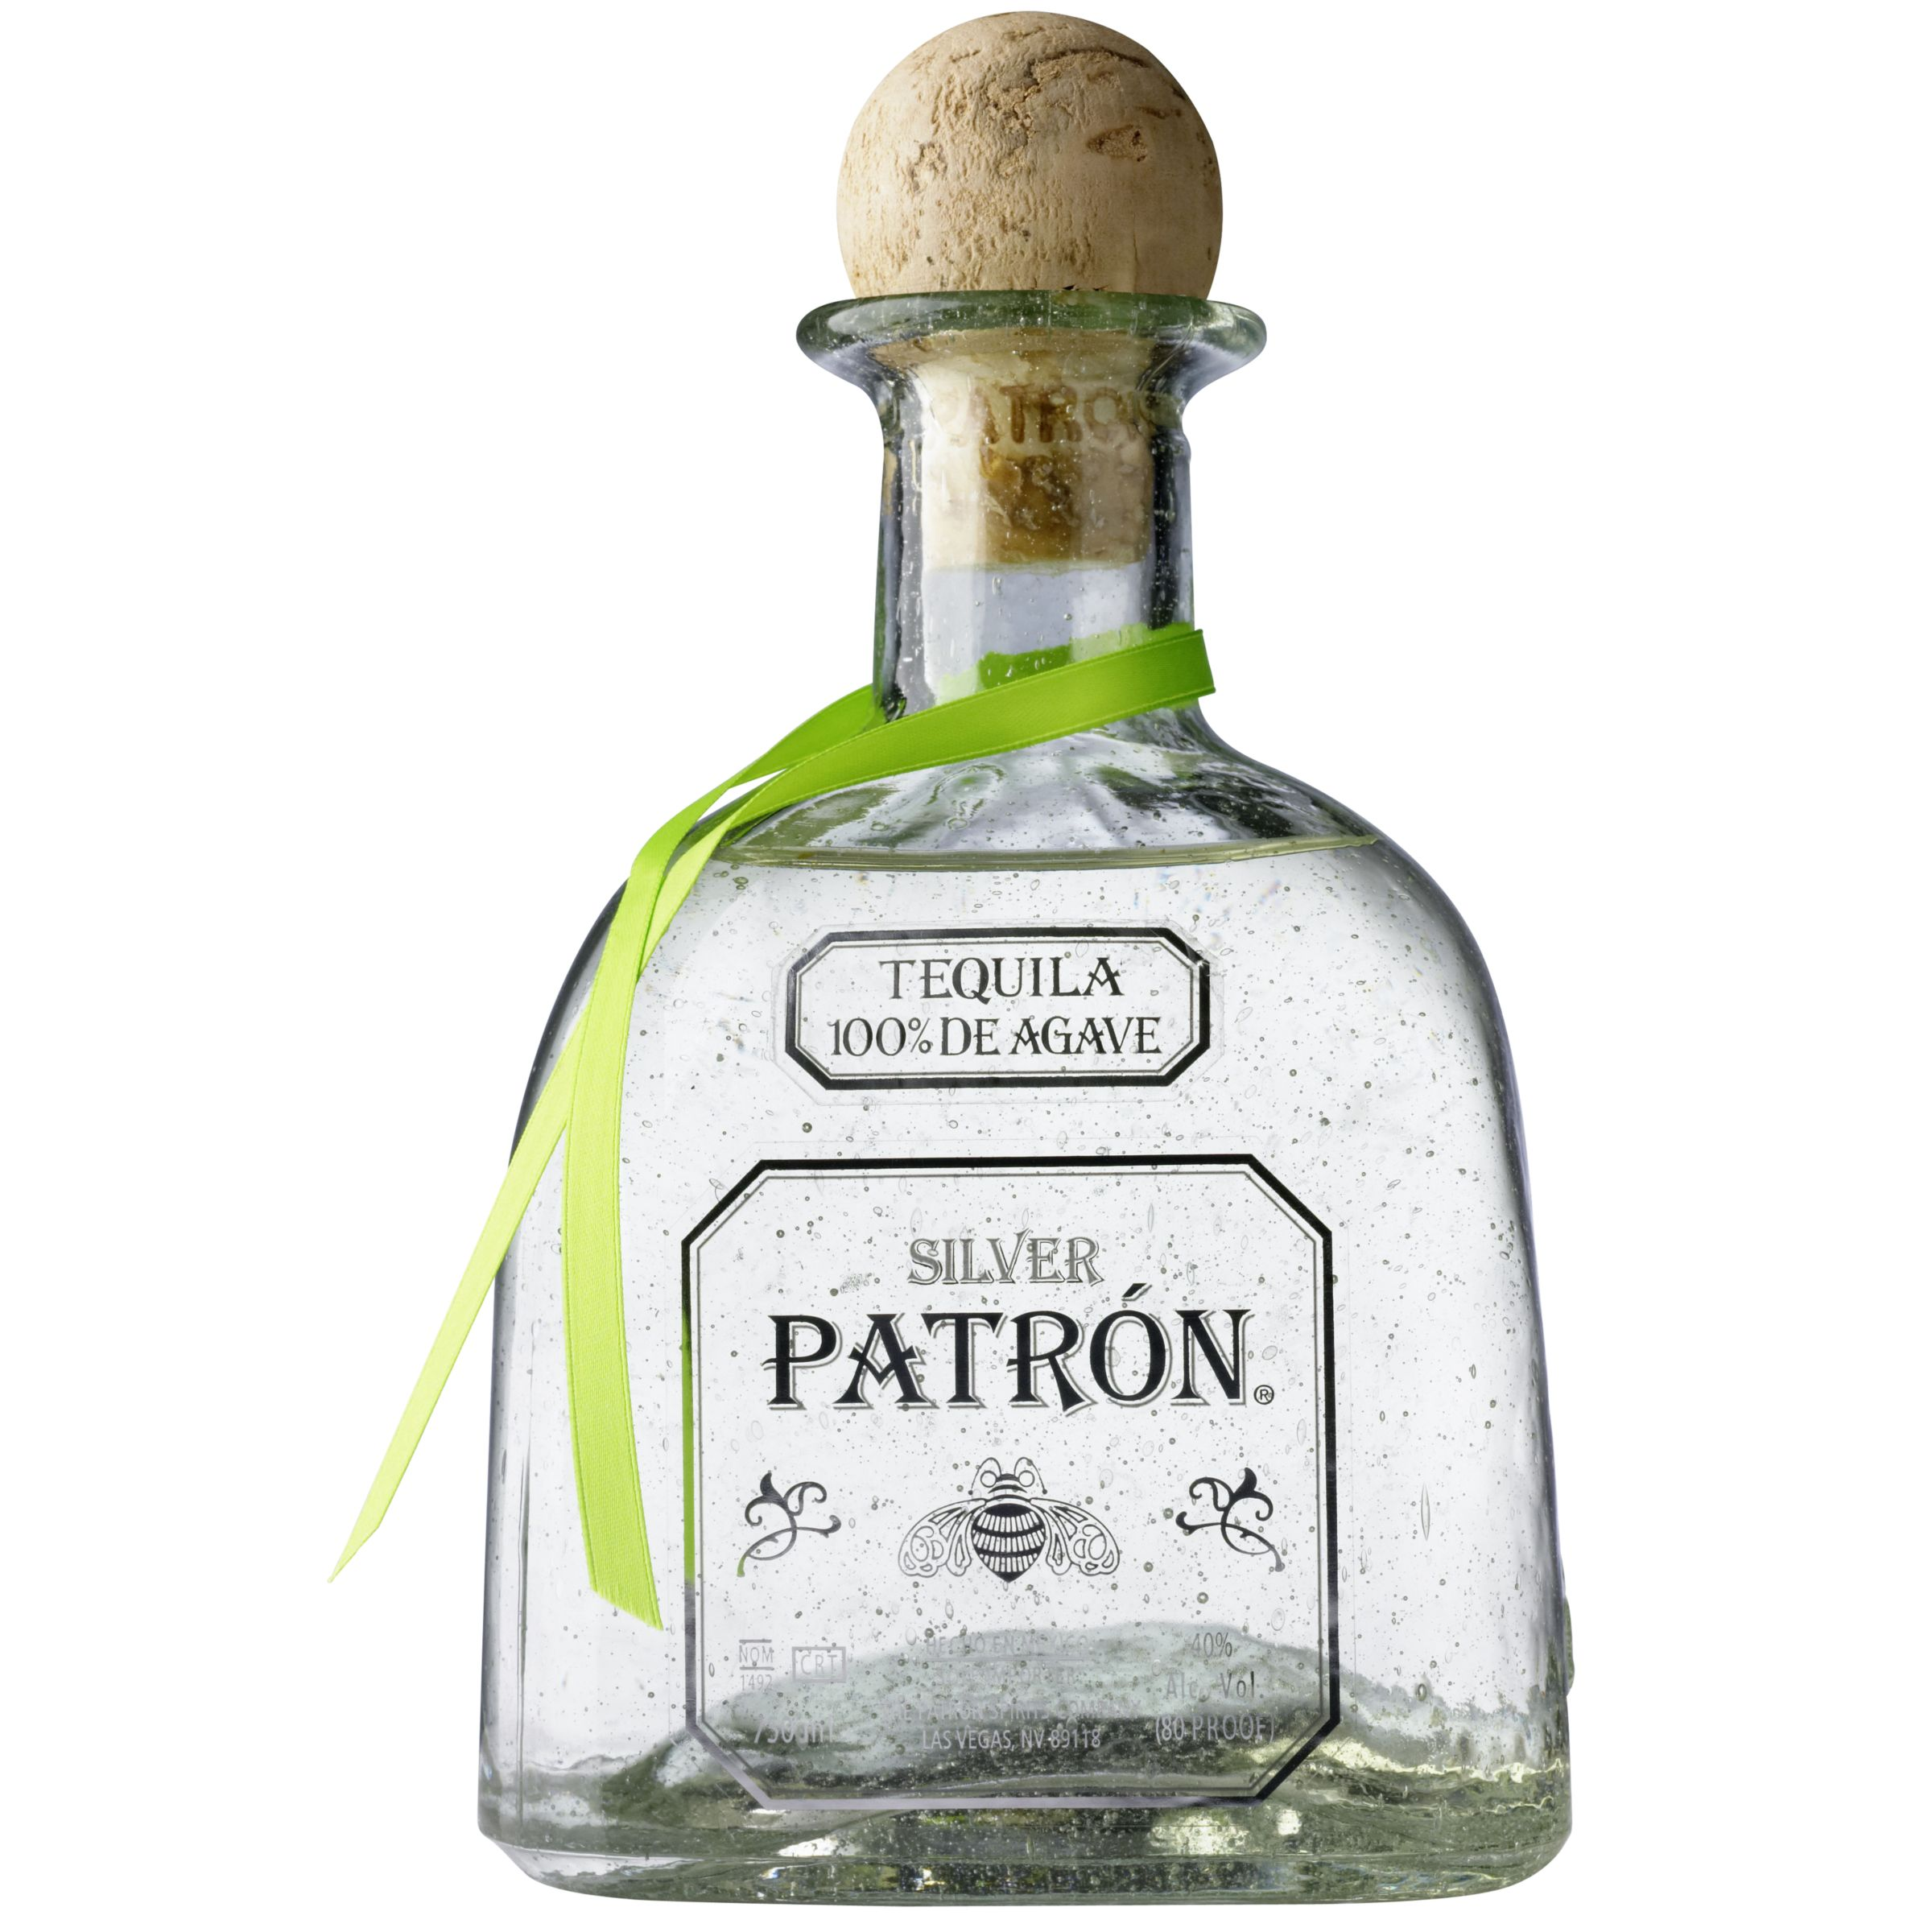 Patron Silver Tequila at John Lewis